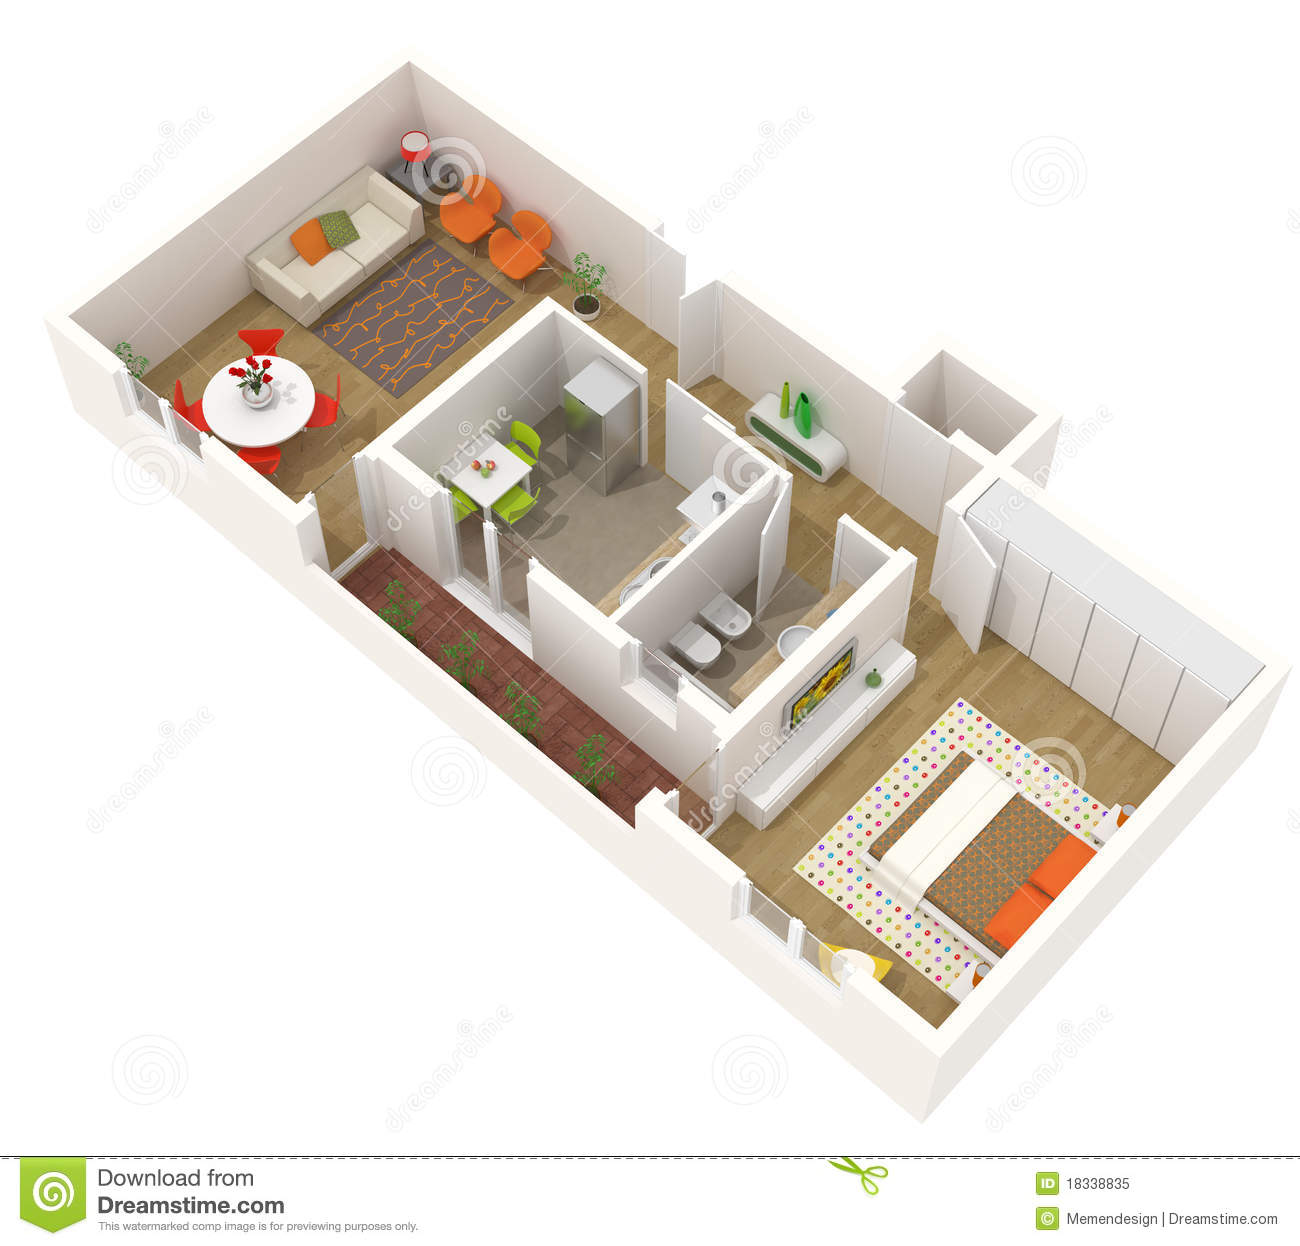 Apartment design 3d floor plan stock illustration for Studio apartment design 3d